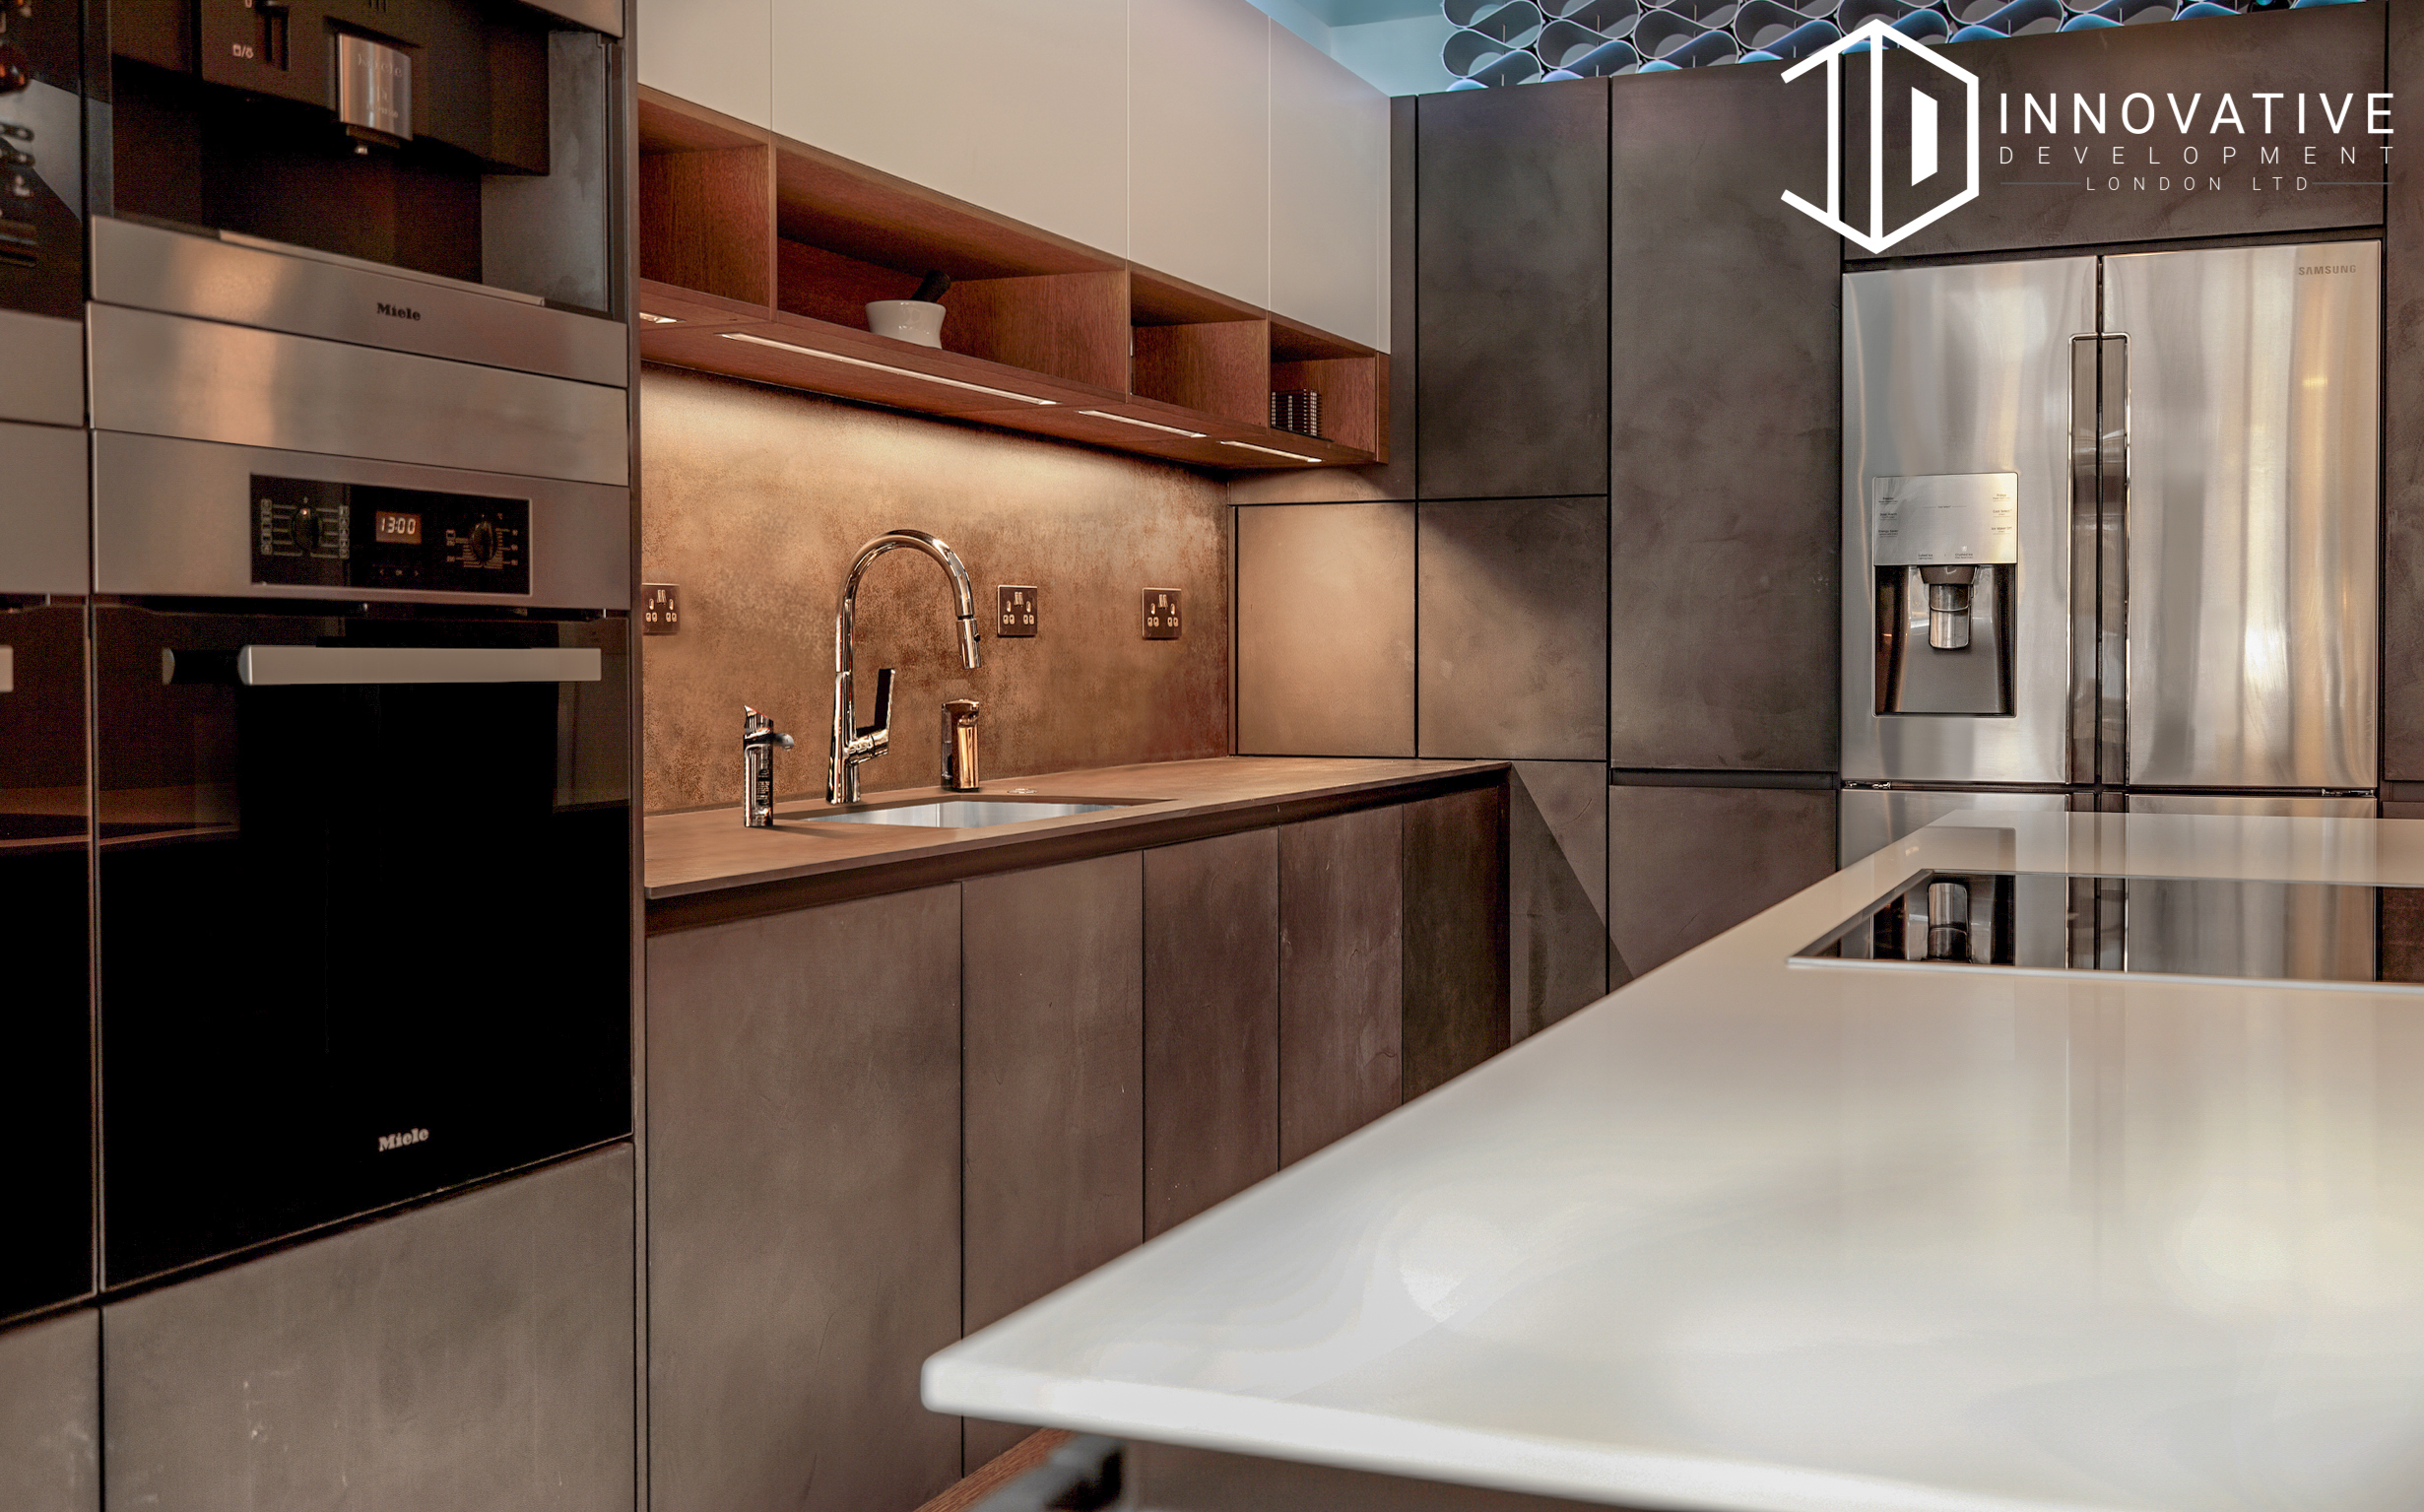 The cooking area of a stunning modern kitchen with a creamy interior design for a completed Kitchen extension in Chiswick